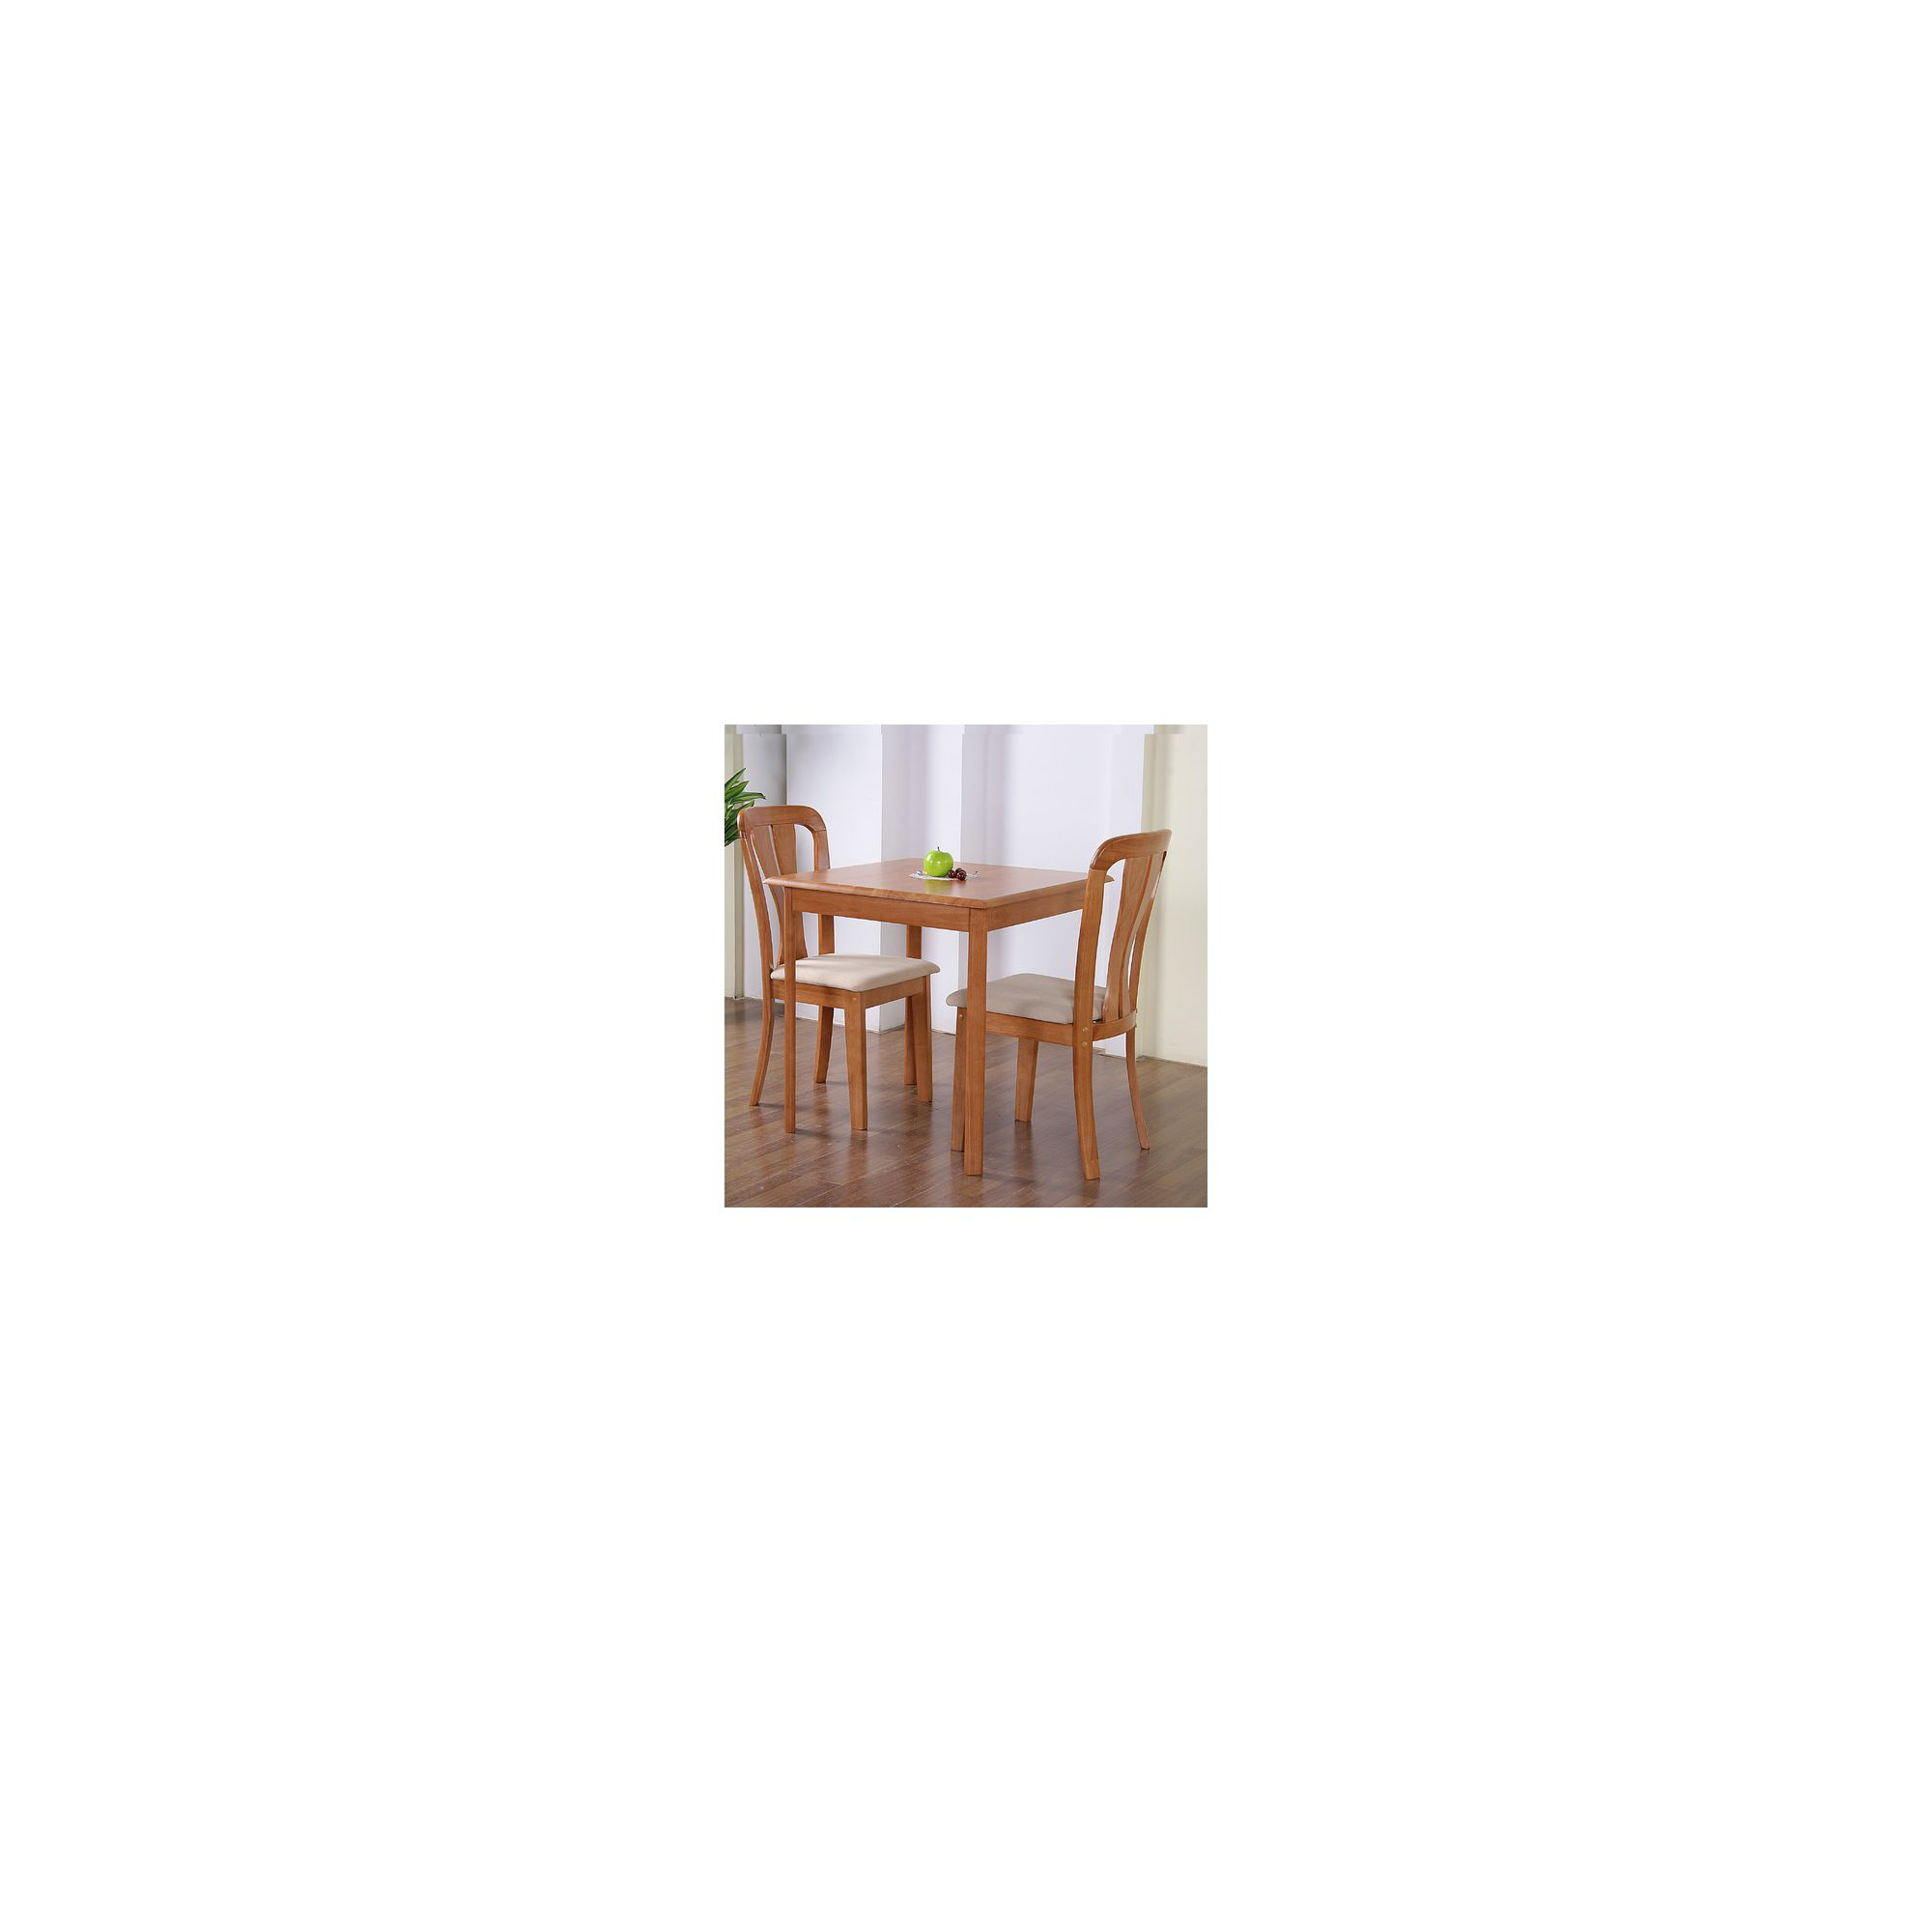 G&P Furniture Windsor House 3-Piece Derby Square Dining Set with Slatted Back Chair - Maple at Tesco Direct